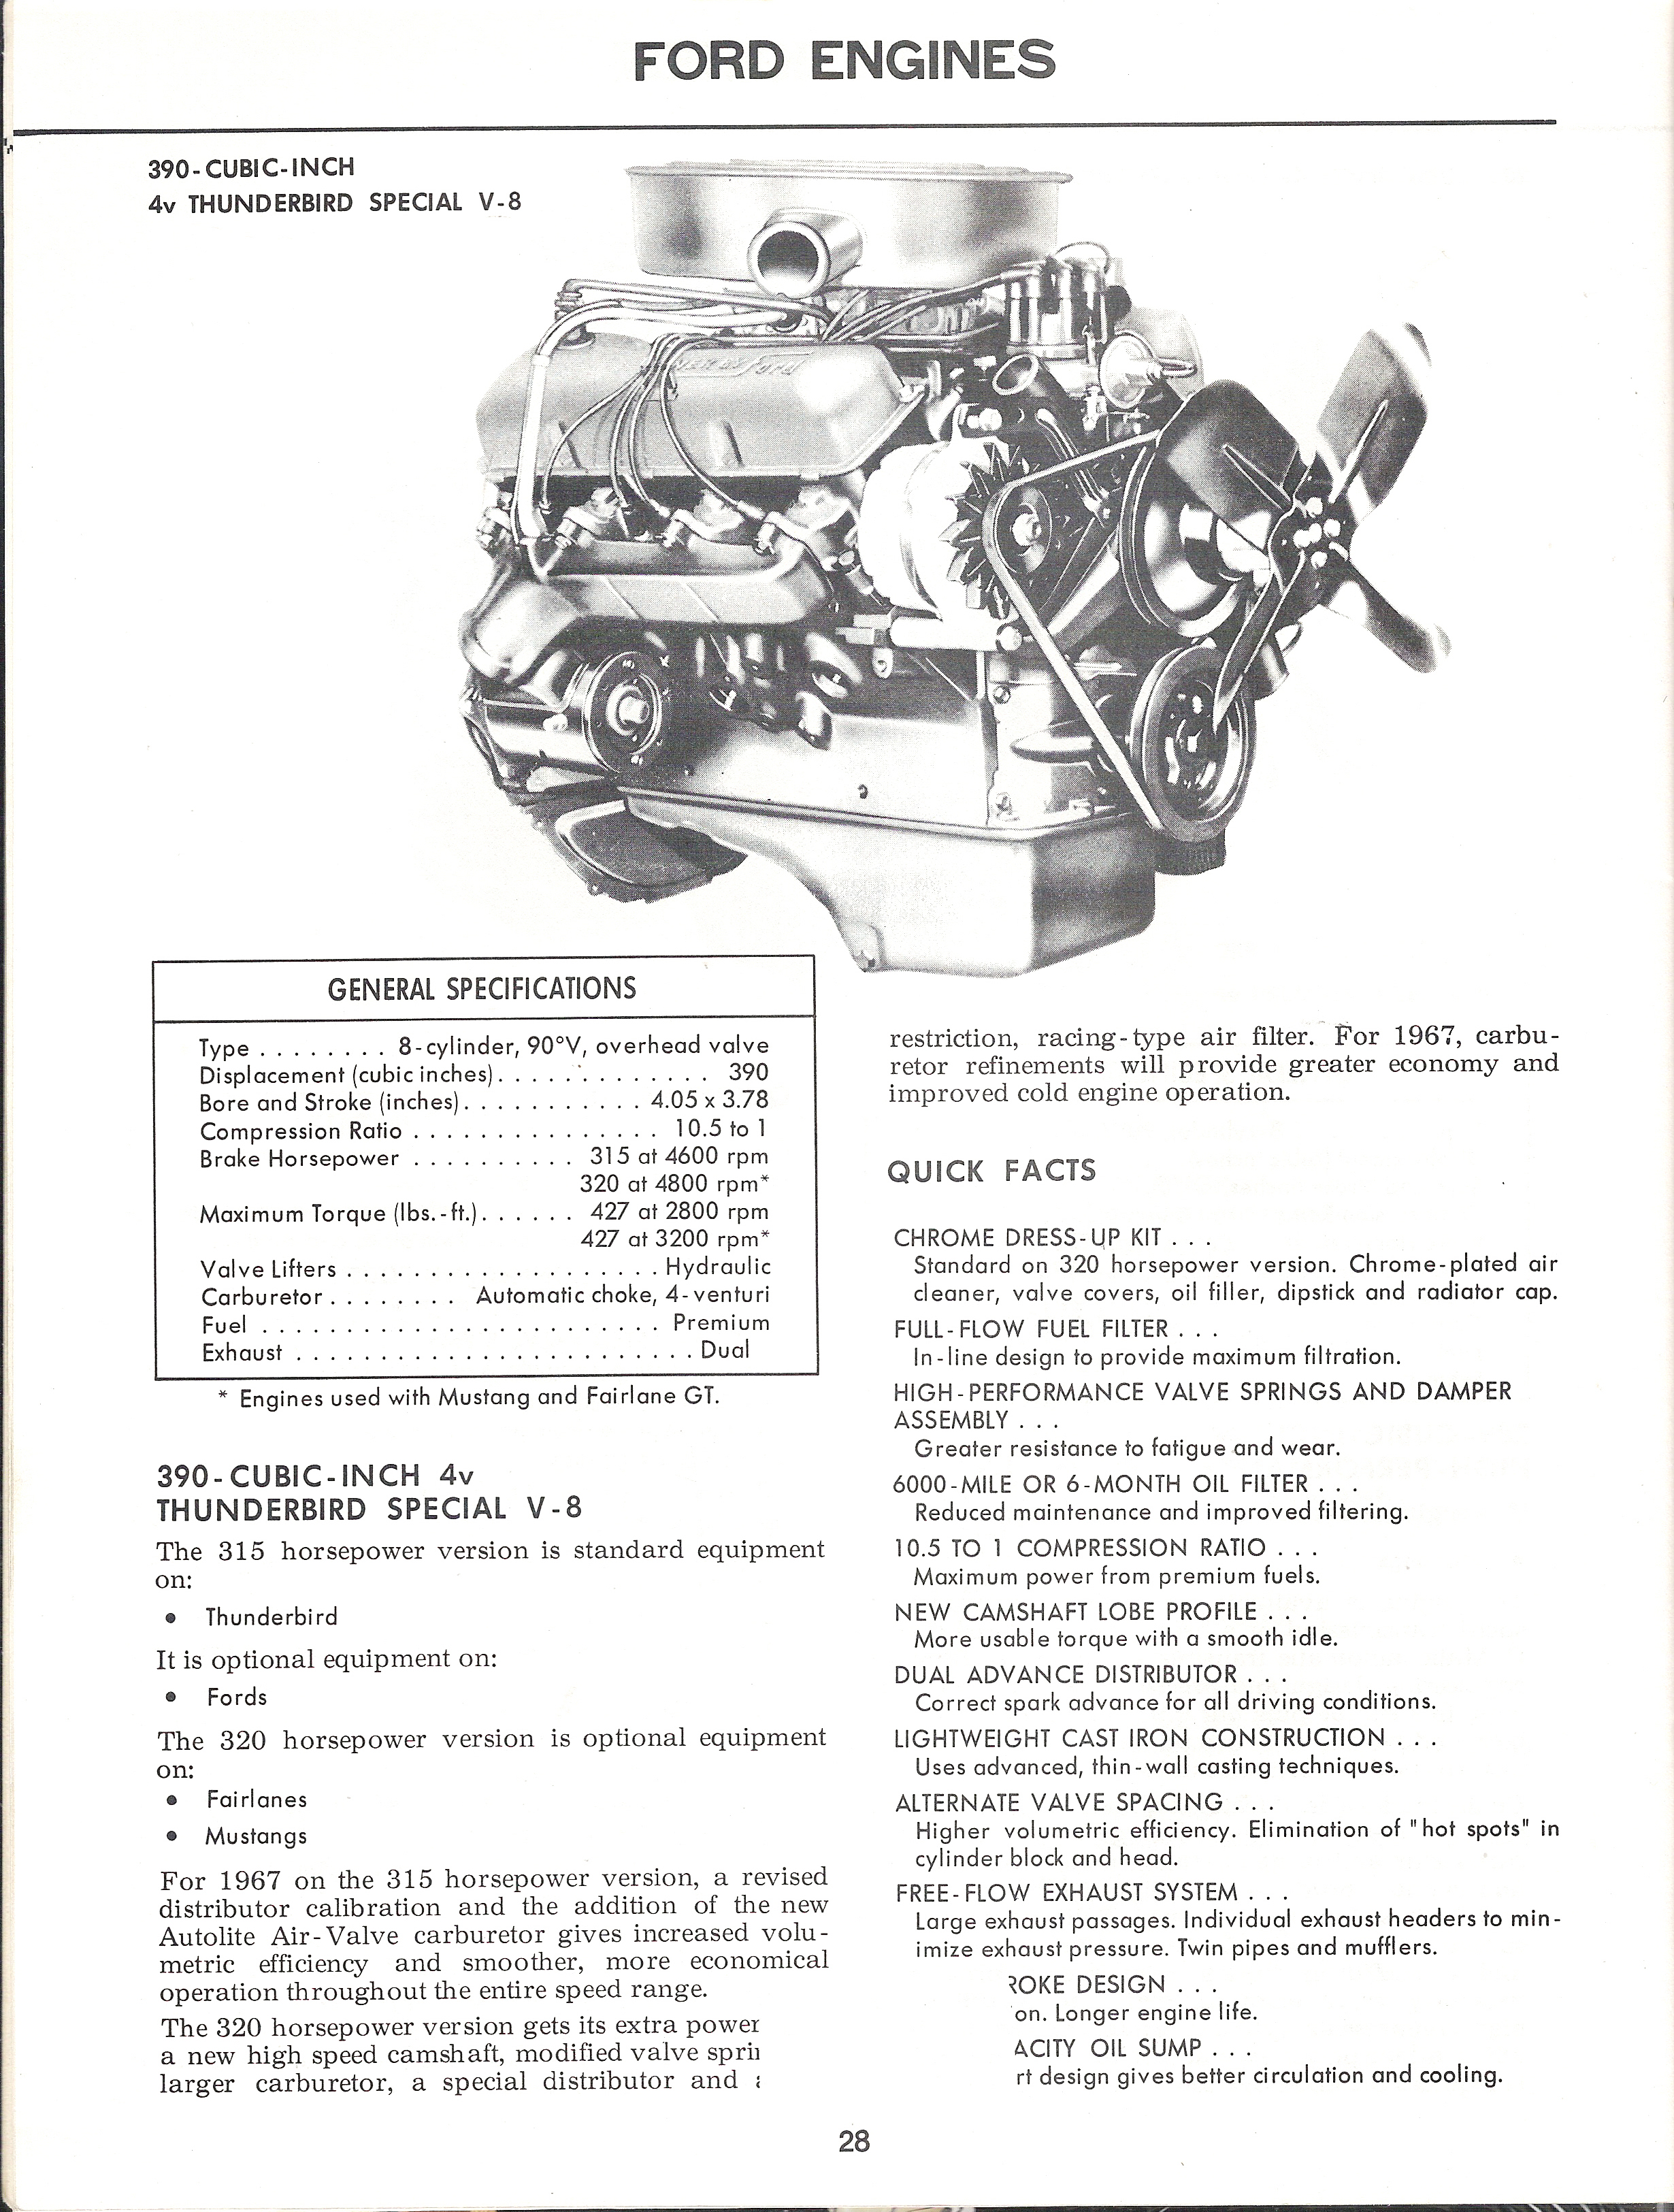 67 ford mustang illustrated facts book